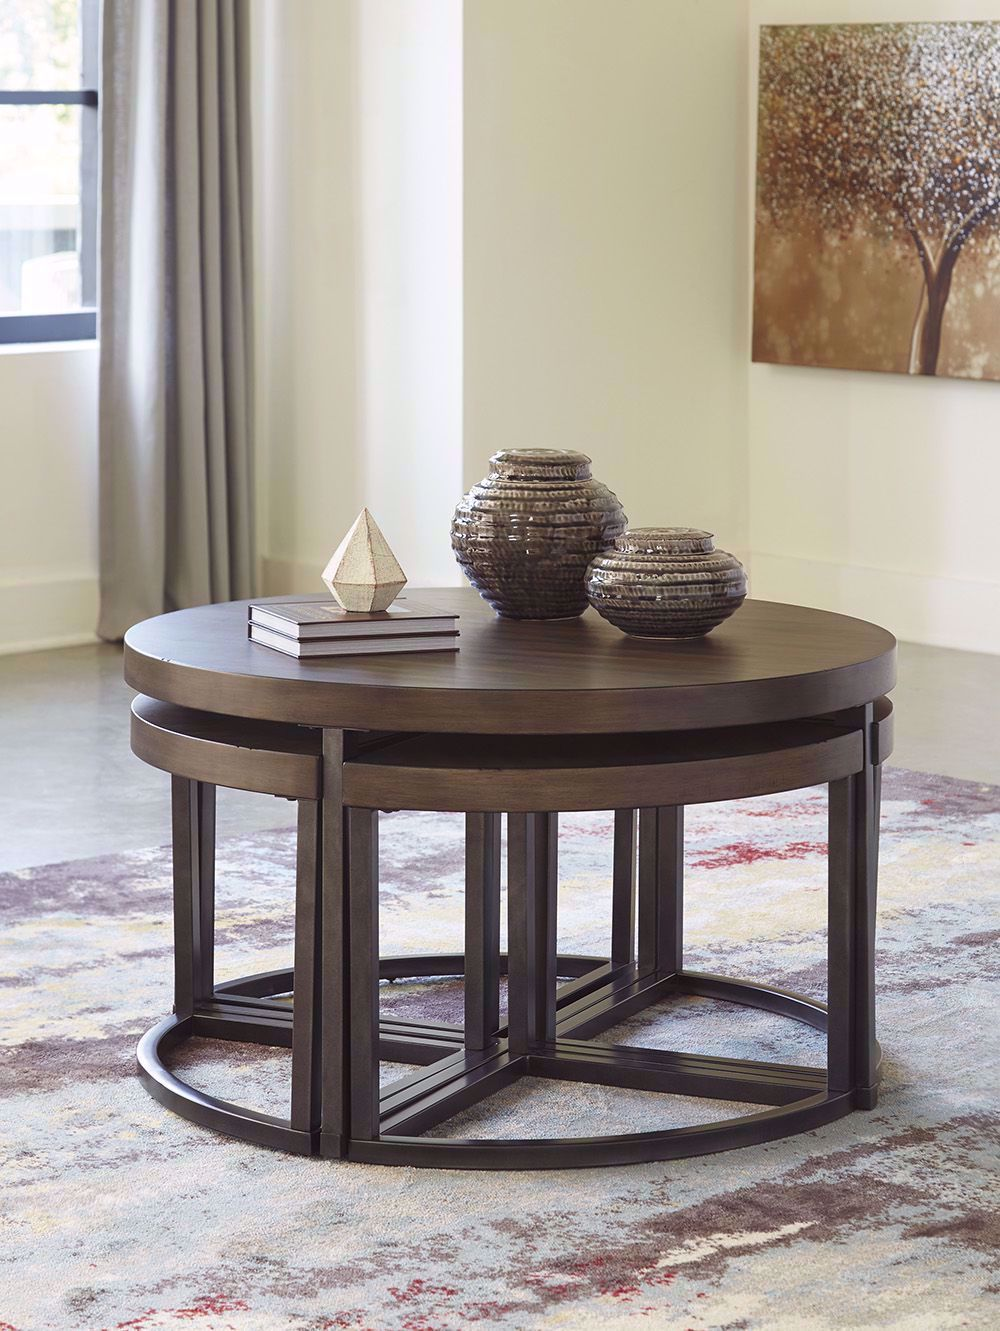 Picture of Johurst Black and Gray Cocktail Table with Four Stools